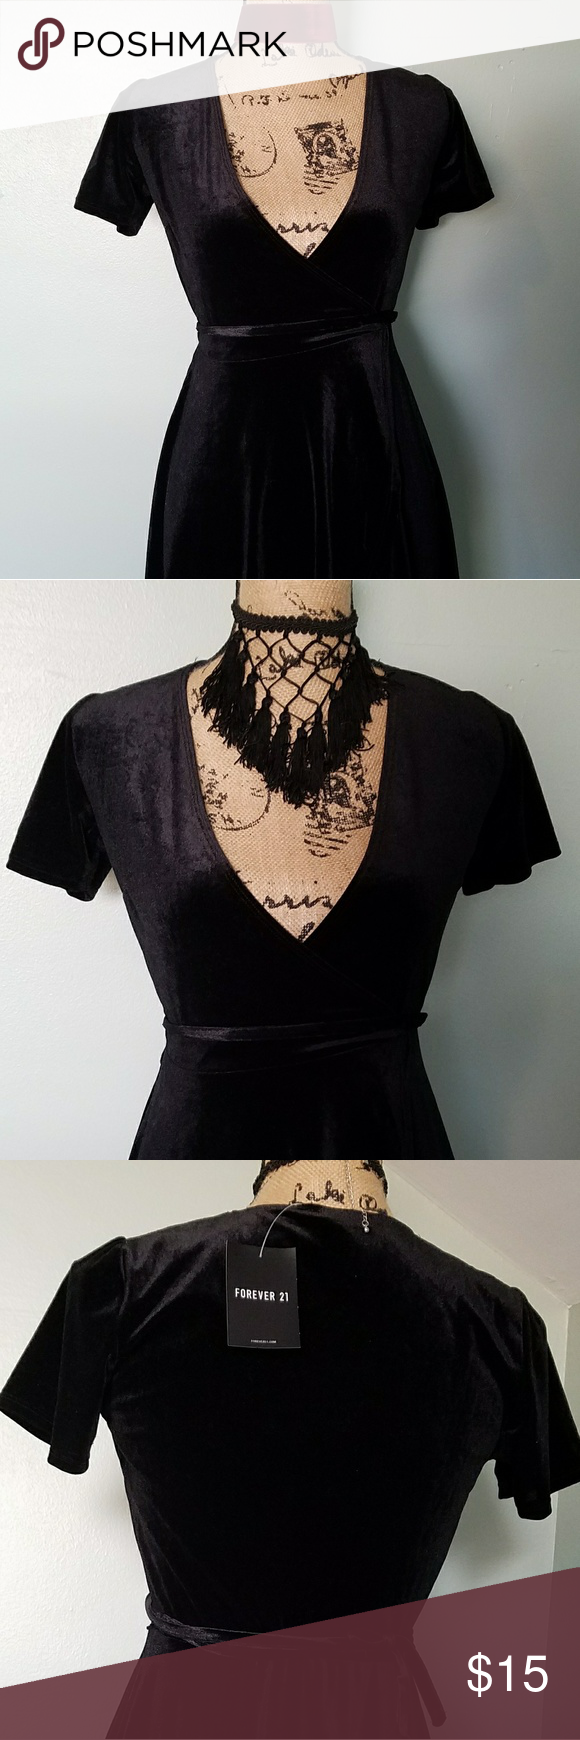 b76ef1612d Forever 21 Black Velvet Dress This is a wrap dress from Forever 21 in a  size small. NWT. Forever 21 Dresses Midi